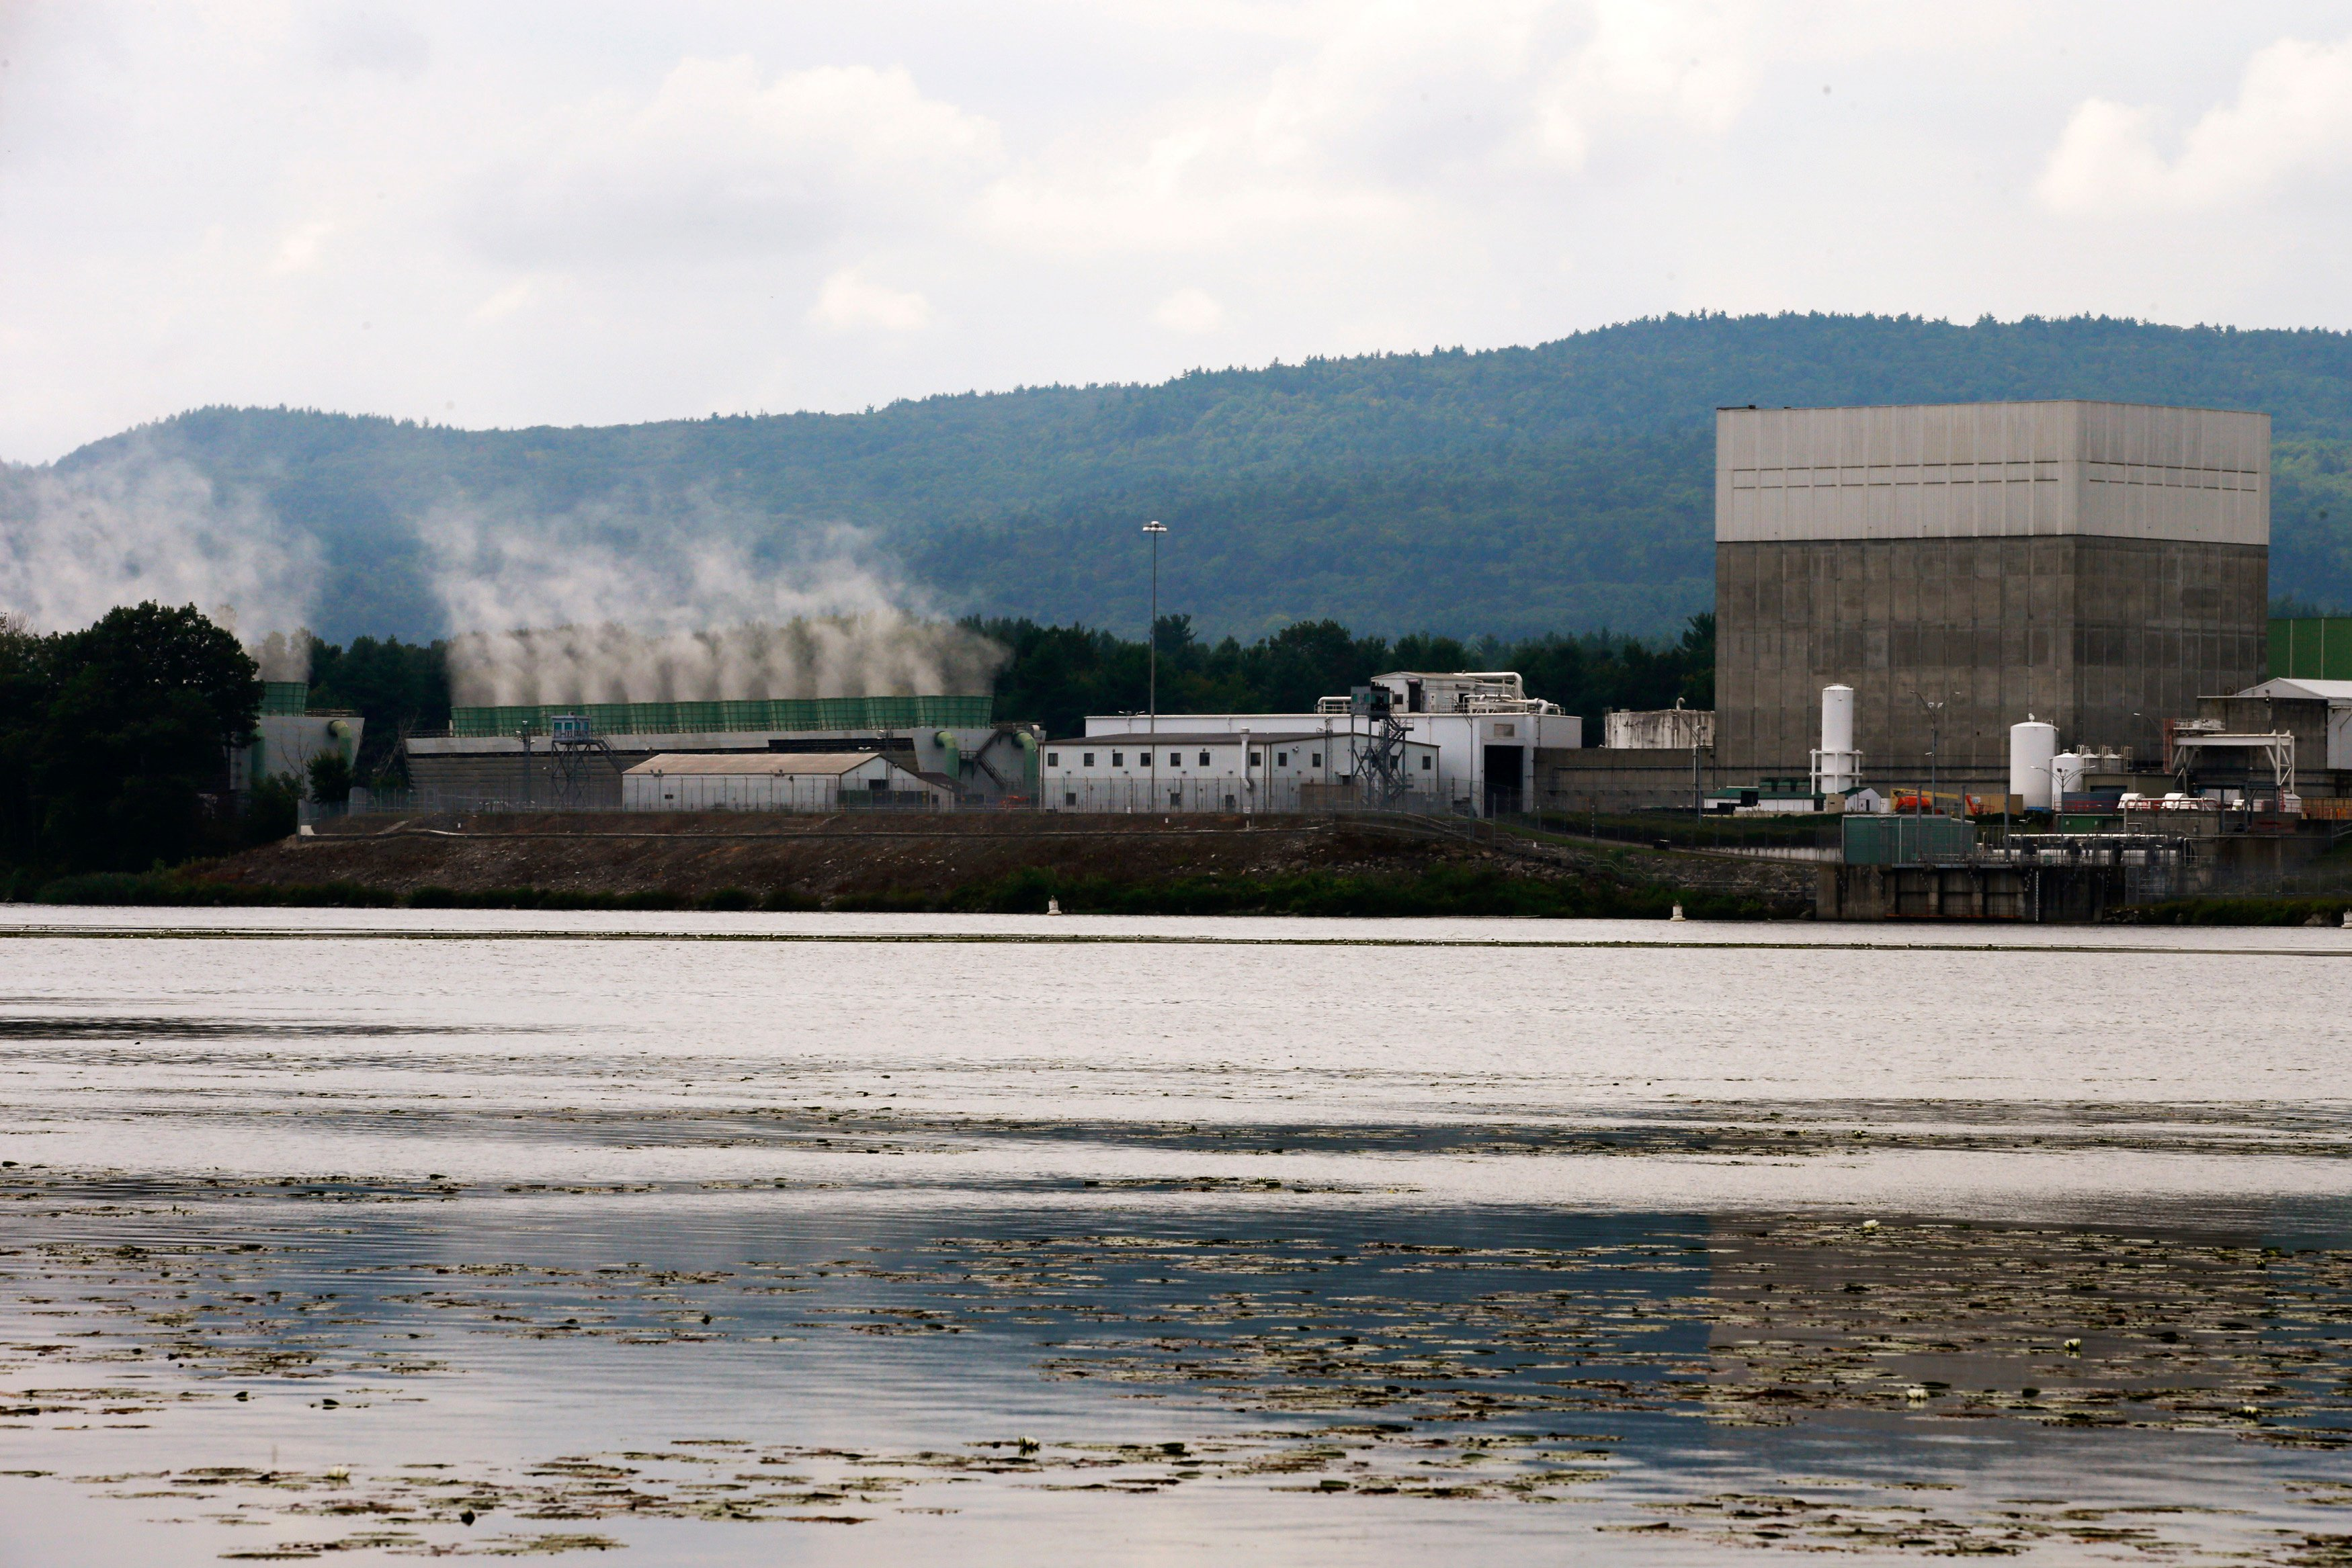 The Vermont Yankee nuclear power plant in Vernon, Vermont sits along the Connecticut River across from Hinsdale